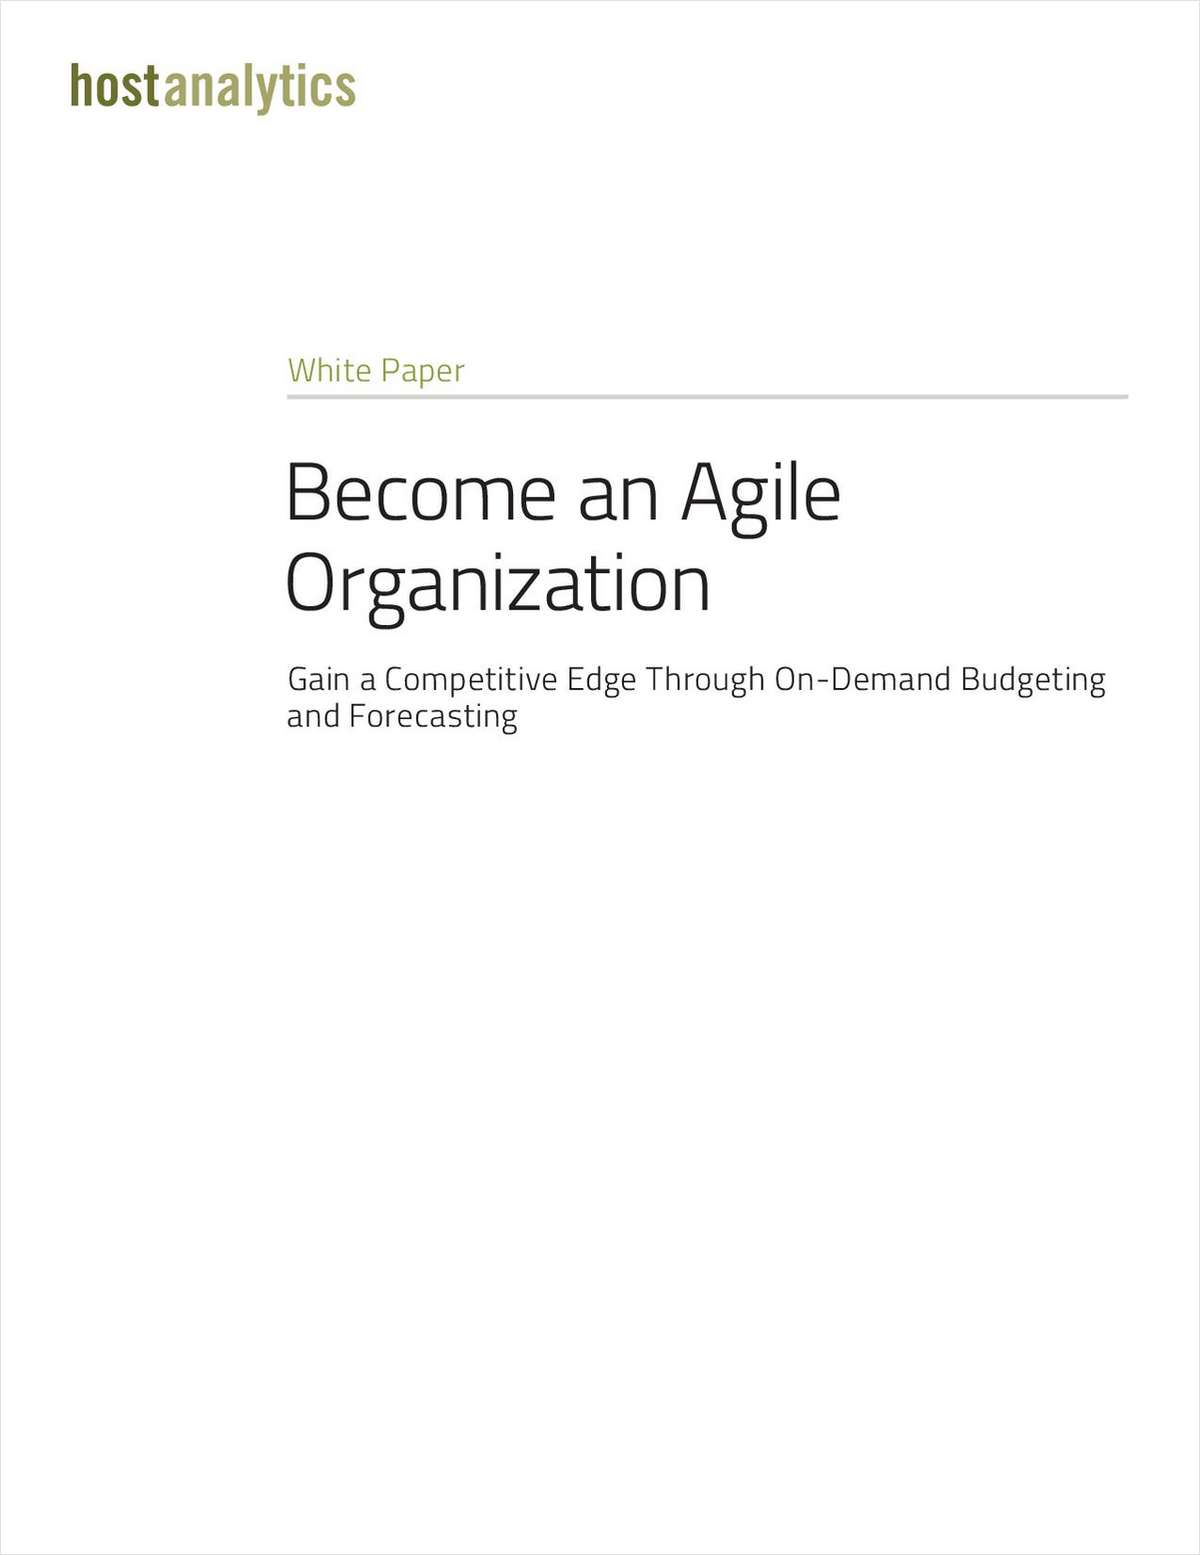 Become an Agile Organization, Starting with the Finance Department